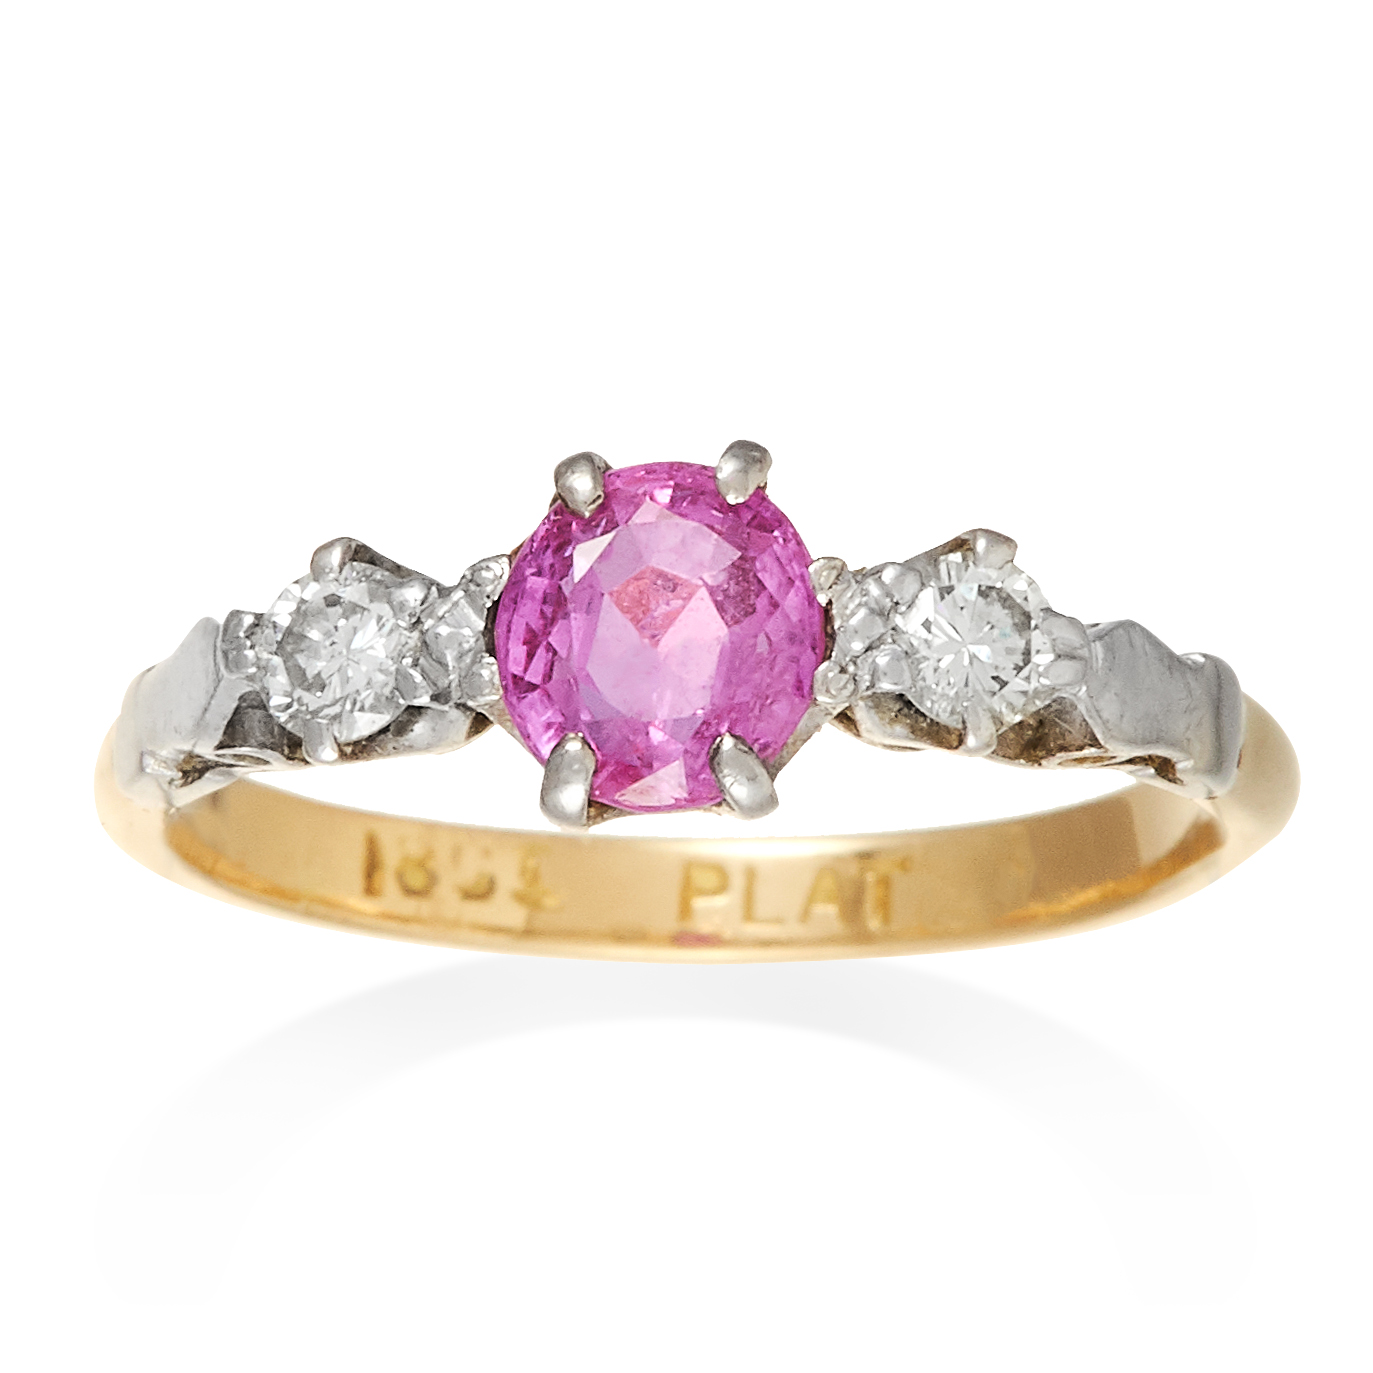 AN ANTIQUE PINK SAPPHIRE AND DIAMOND THREE STONE RING in 18ct yellow gold and platinum, the oval cut